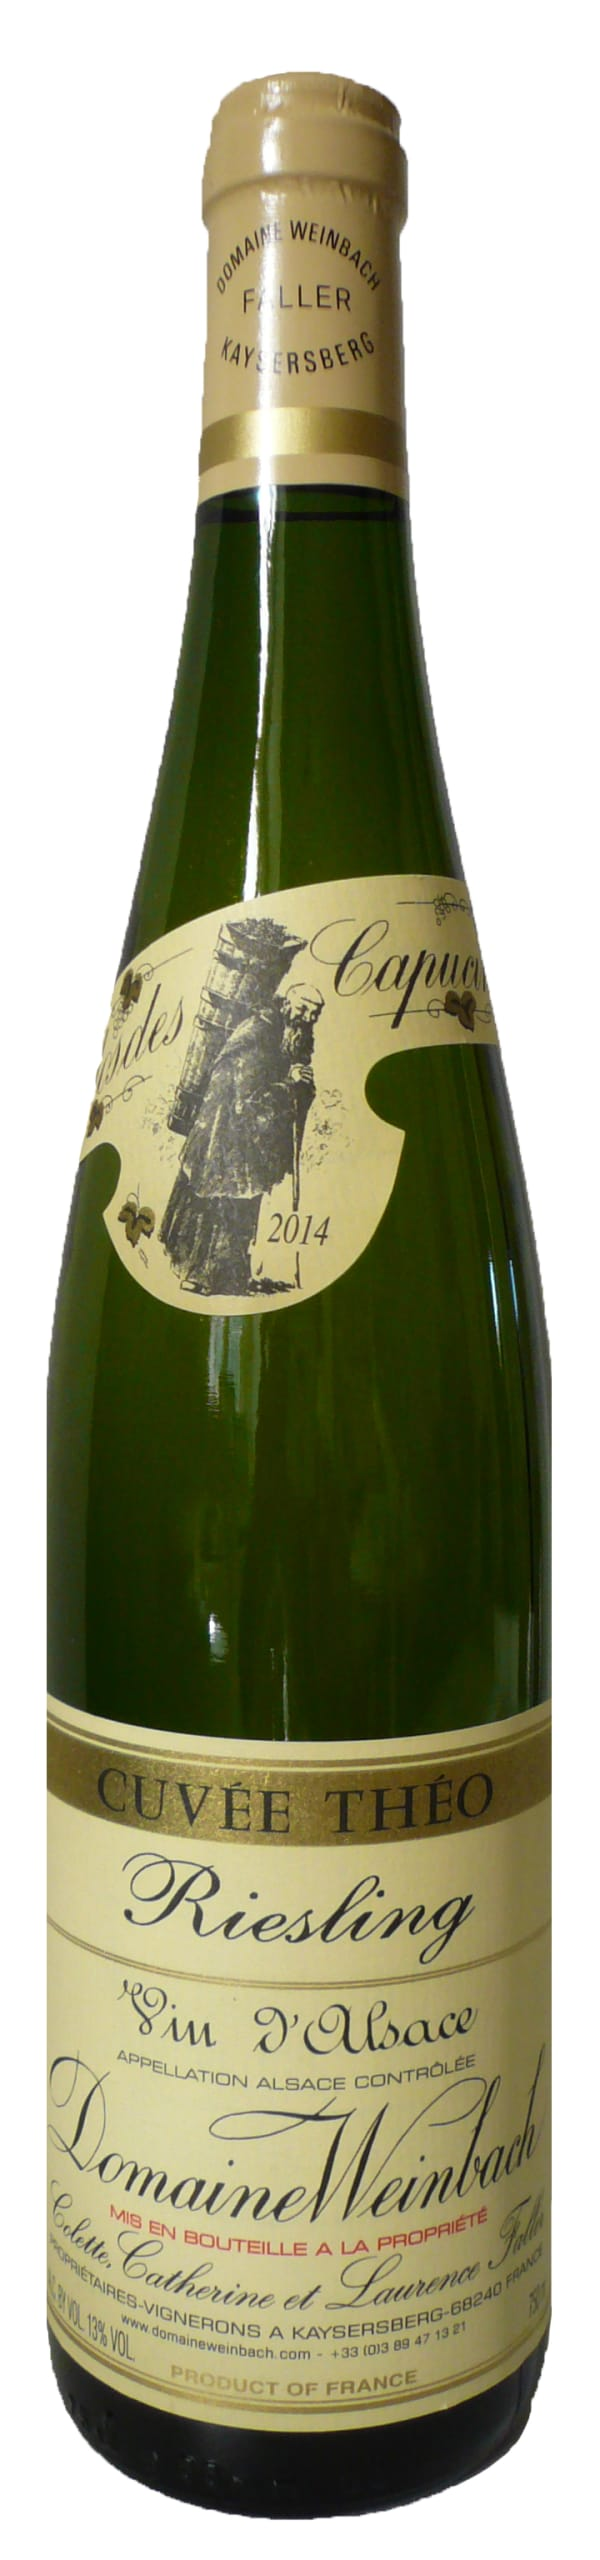 Domaine Weinbach Cuvée Théo Riesling 2015